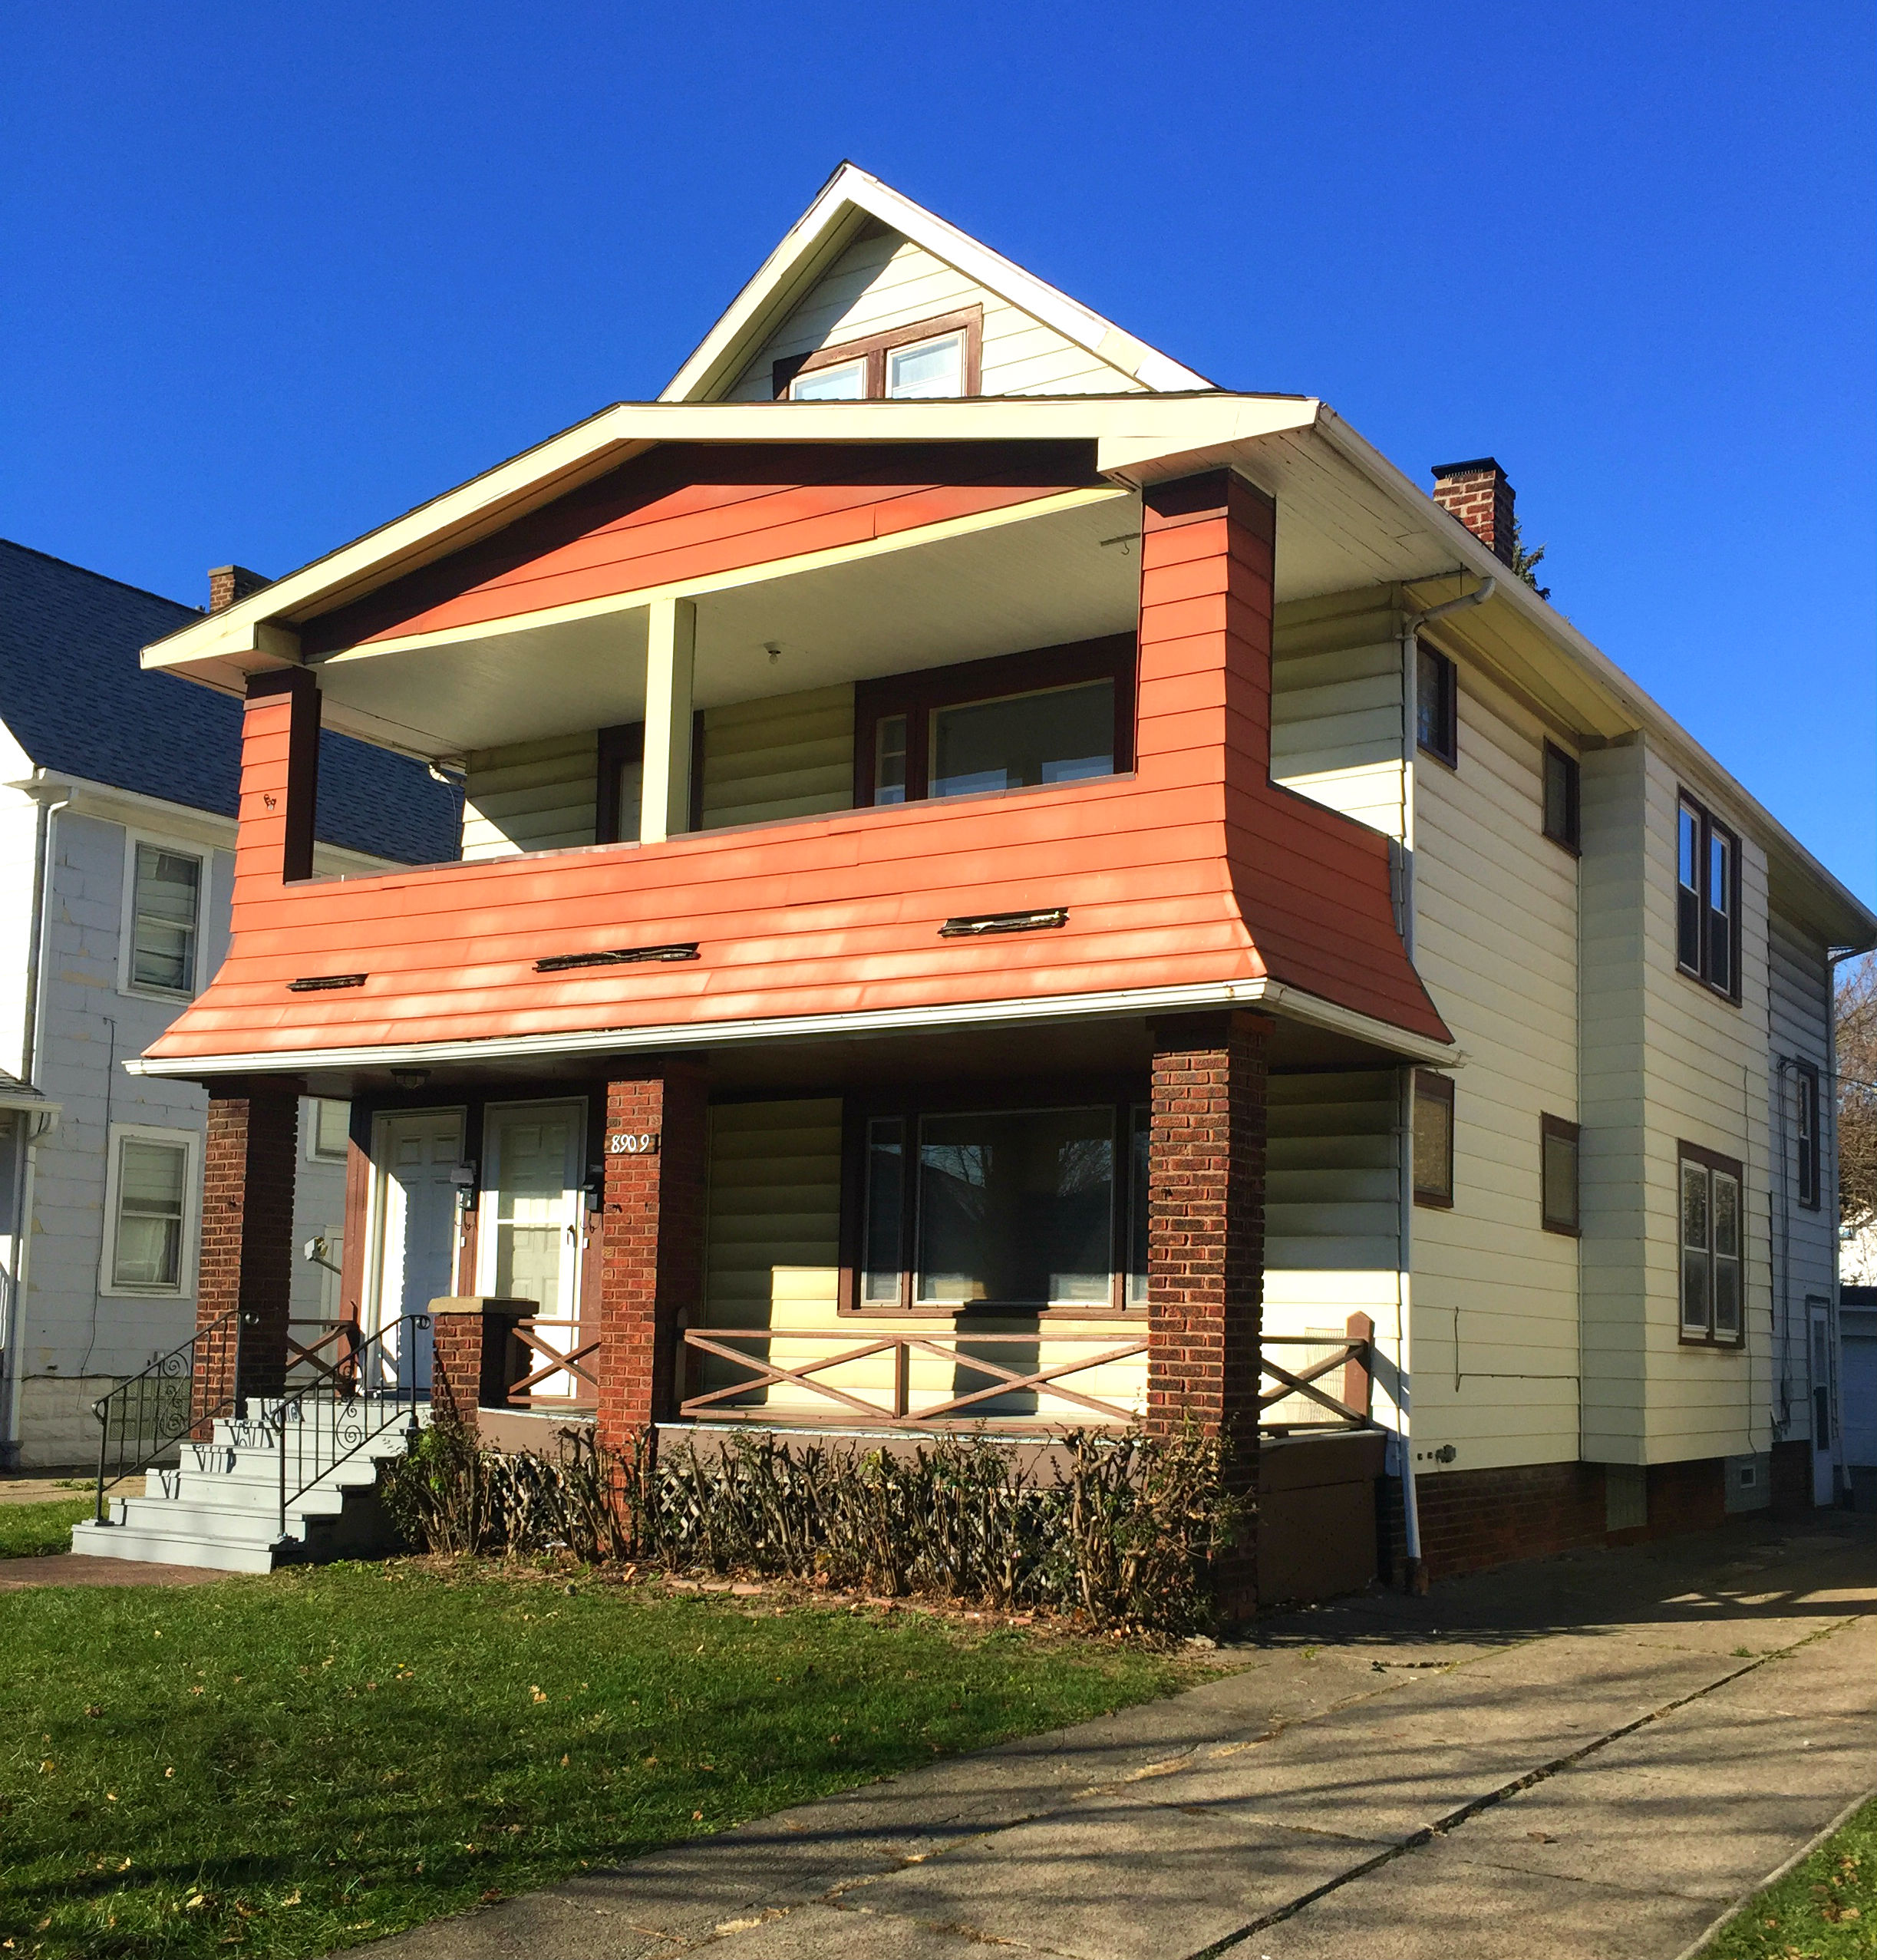 8909 Rosewood Ave., Cleveland | 4 bed 2 bath | 2,206 Sq. Ft. | $44,900